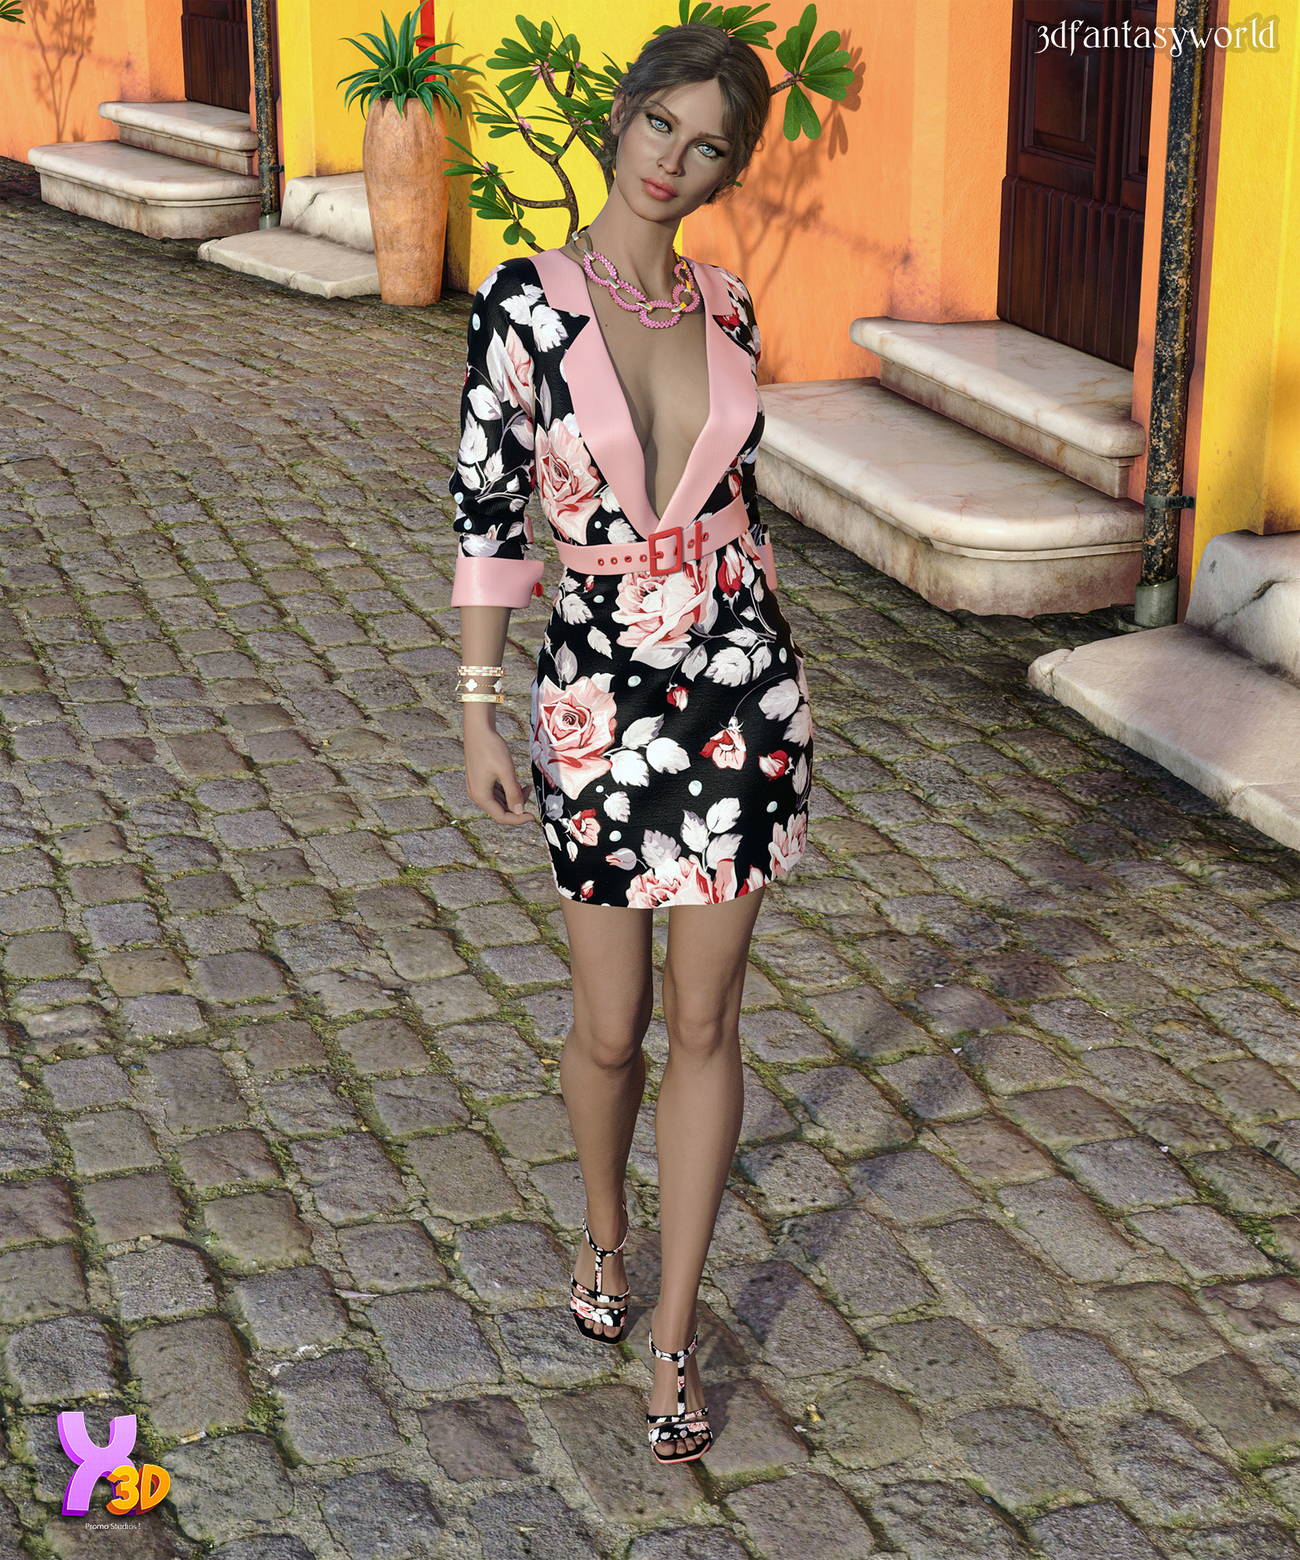 City Wear Callie Outfit G8.1F by fantasy3dworld